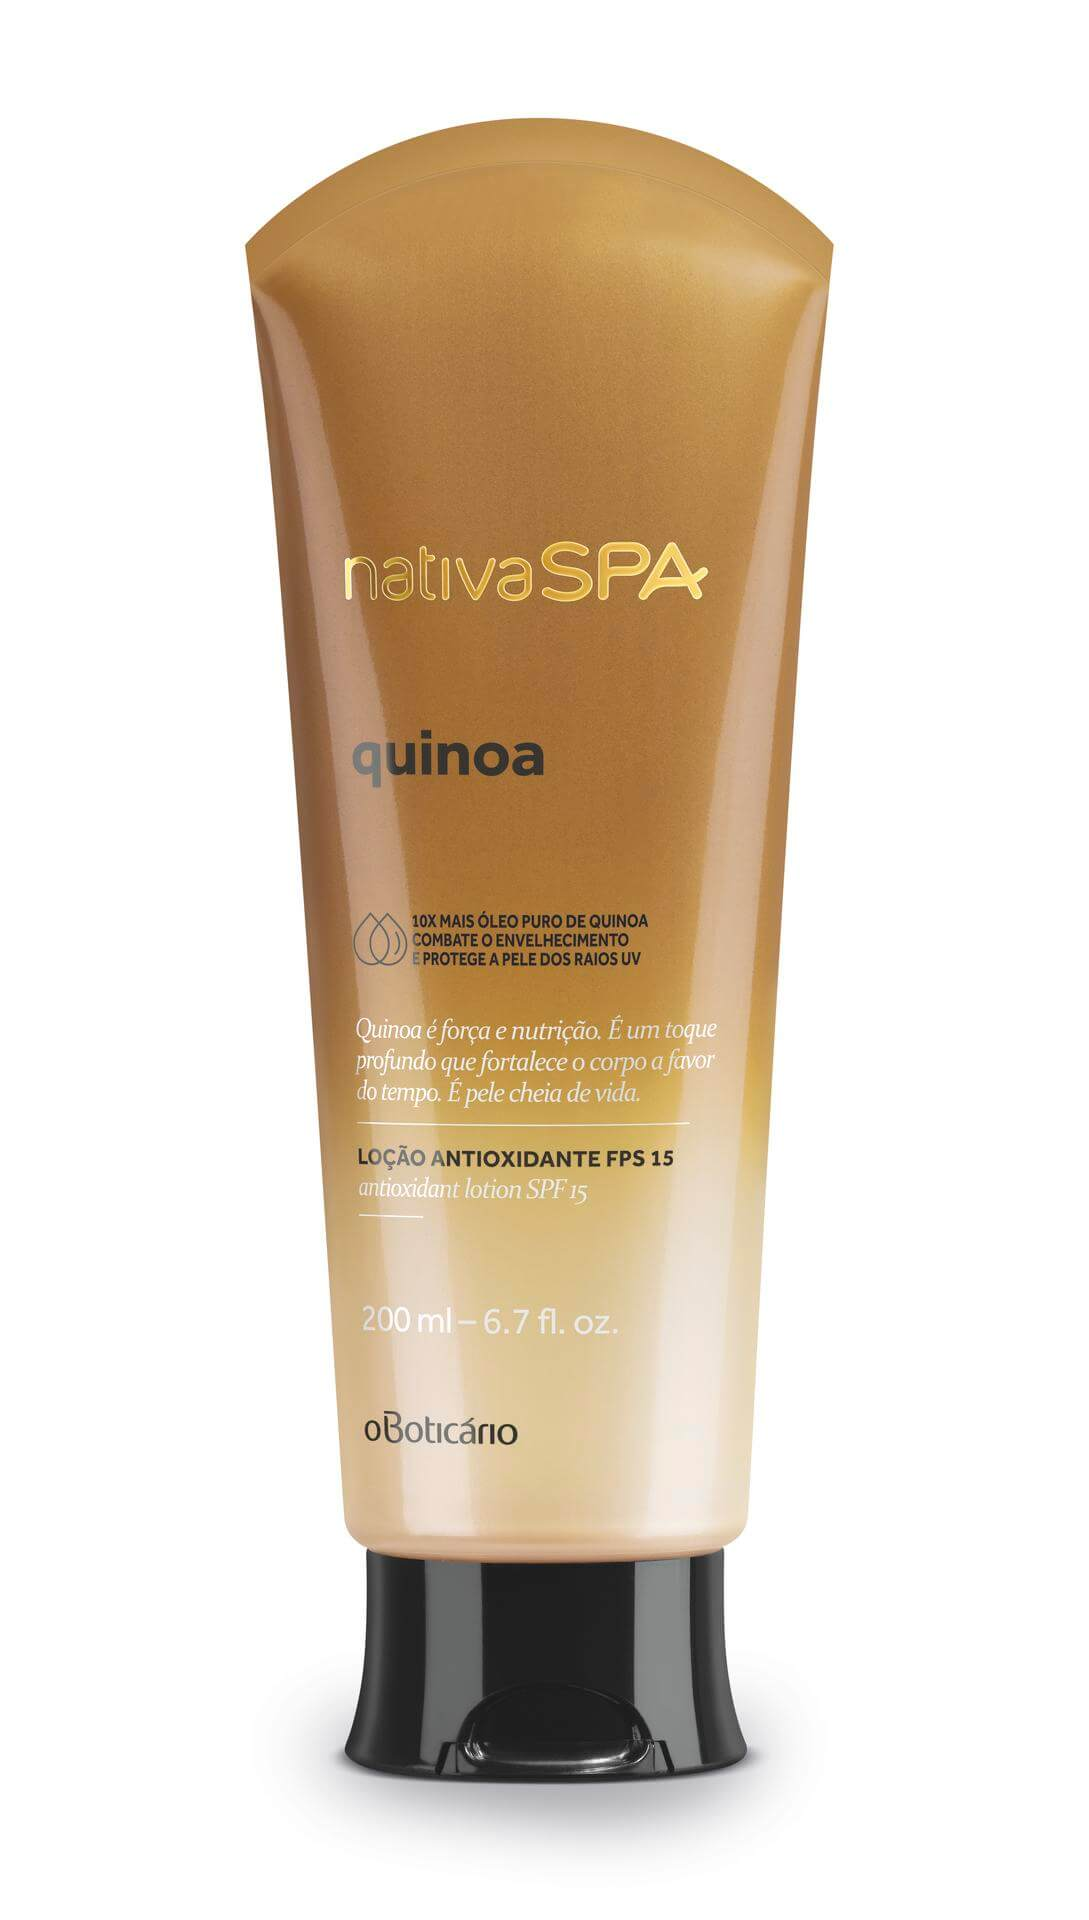 nspa-quinoa-body-lotion